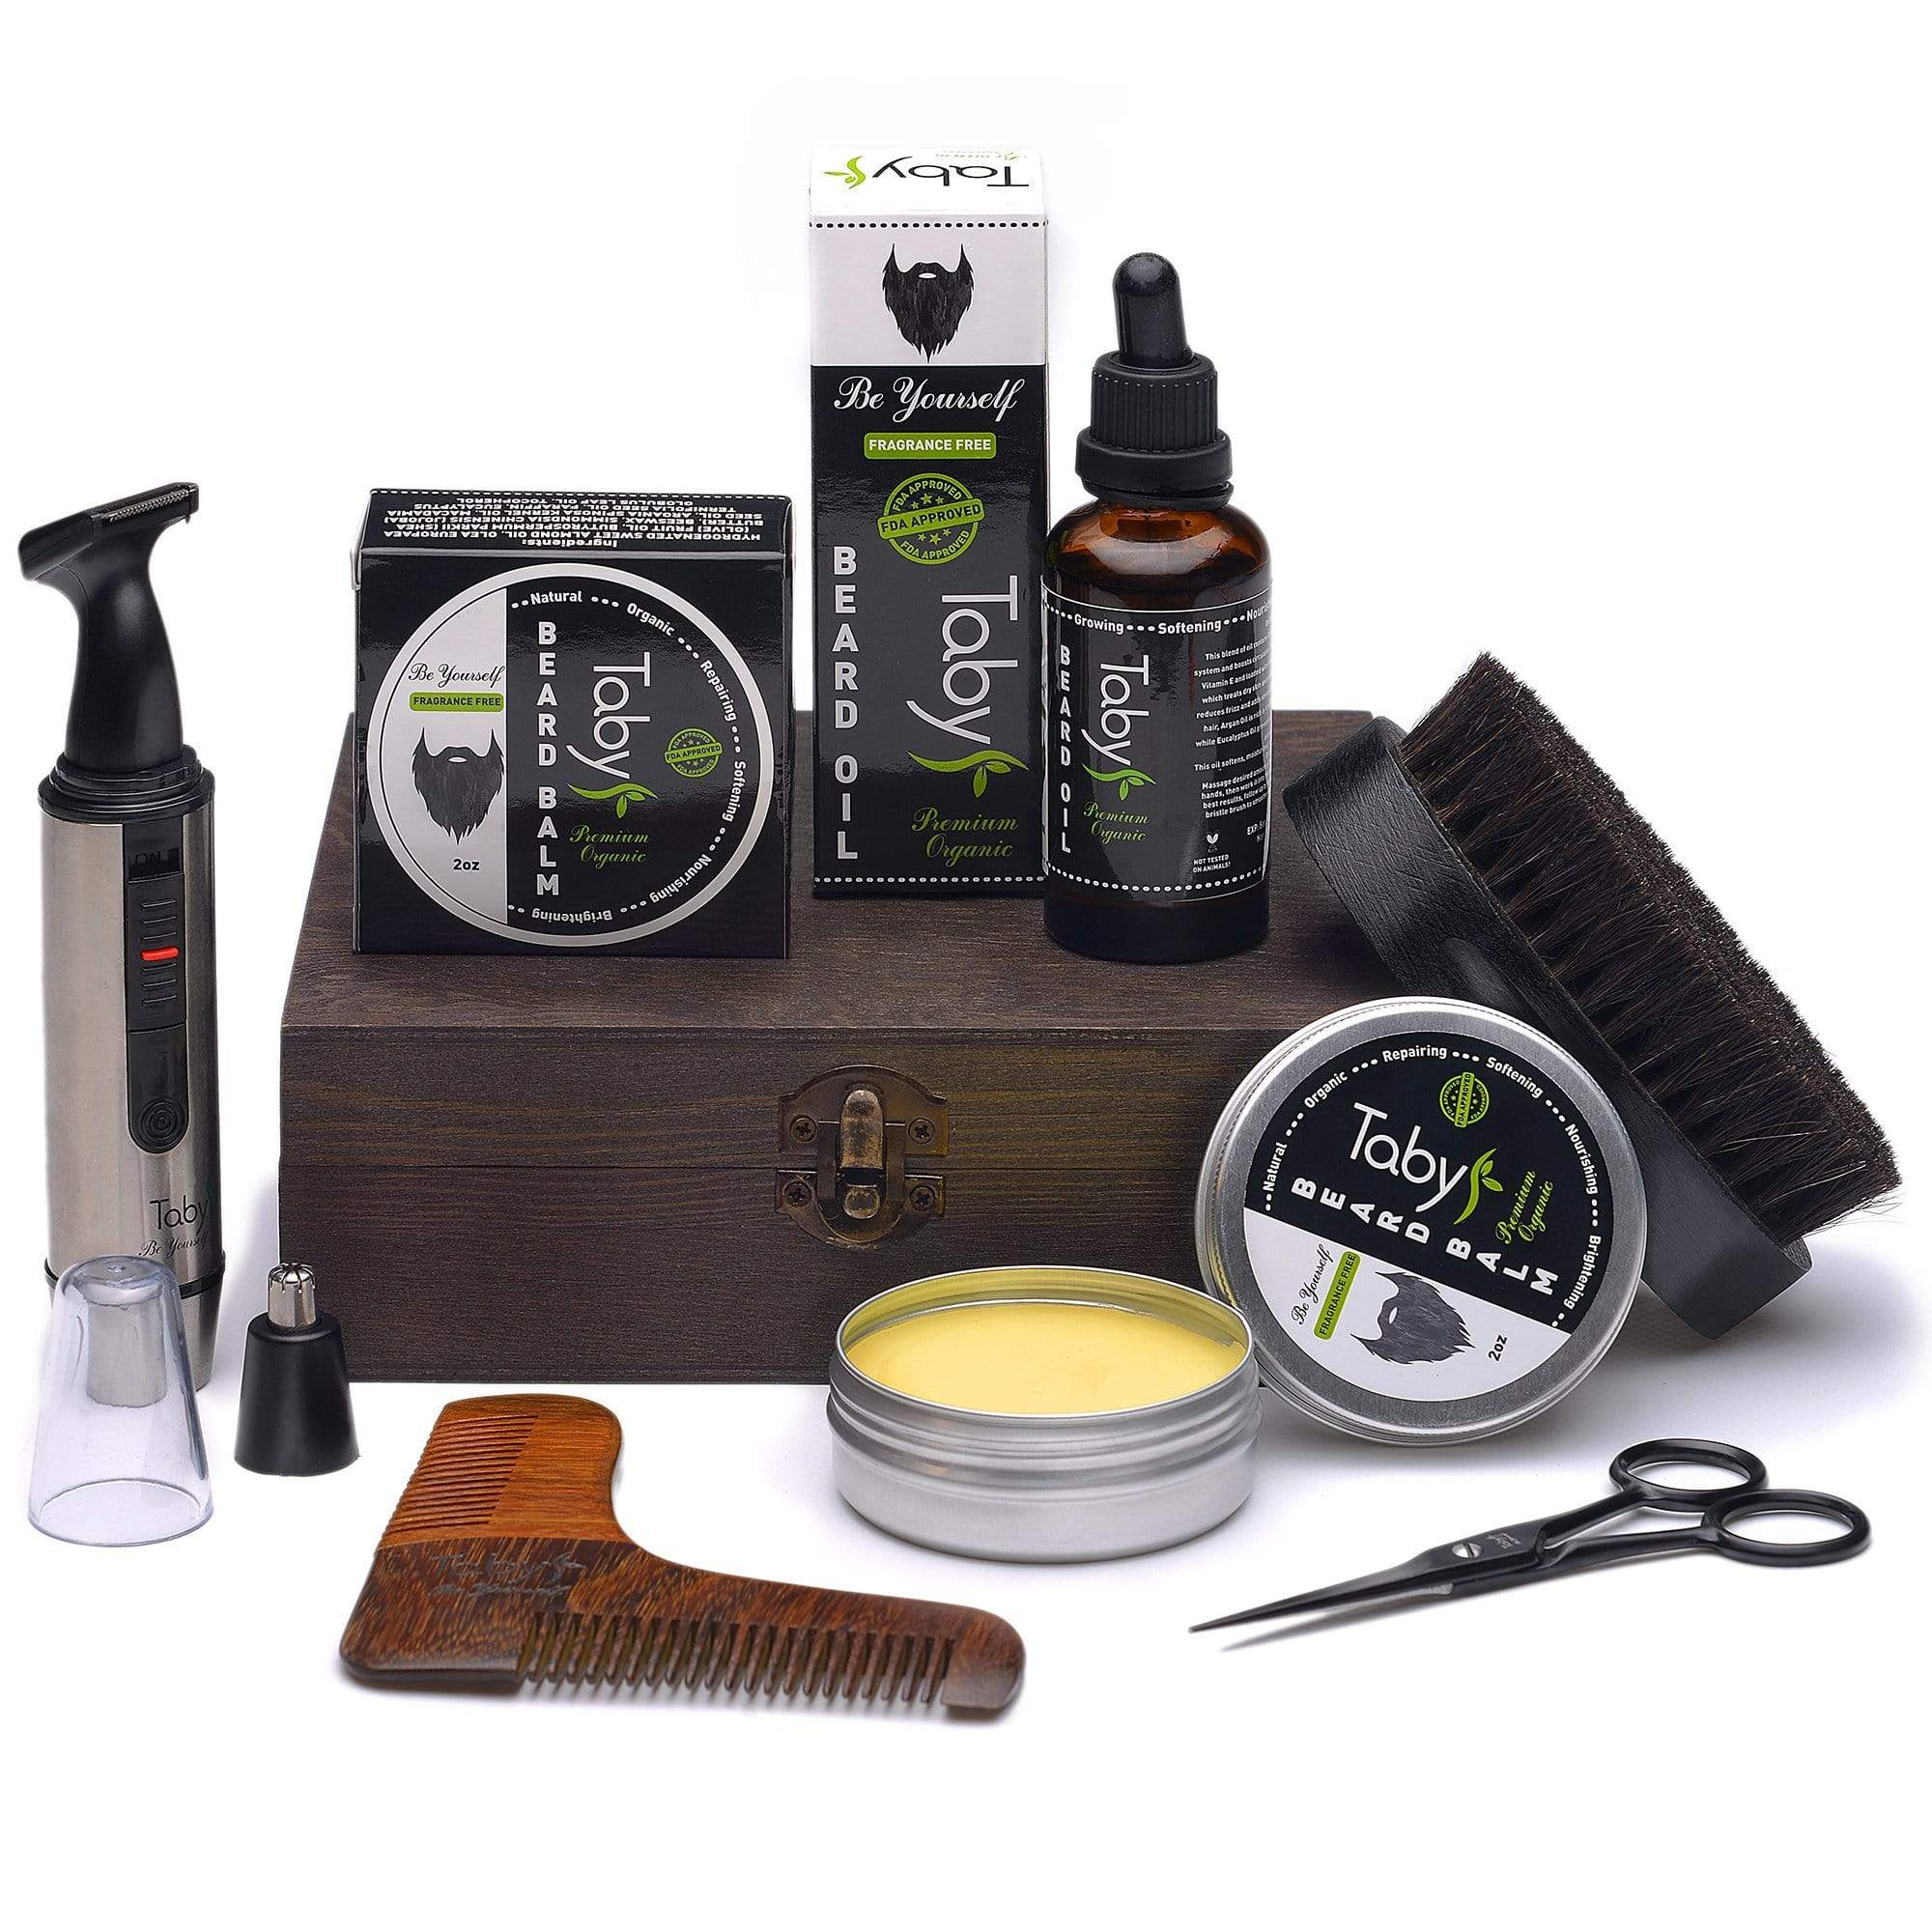 BestGroomingX™ High Quality Beard Grooming and Trimming Set for Men